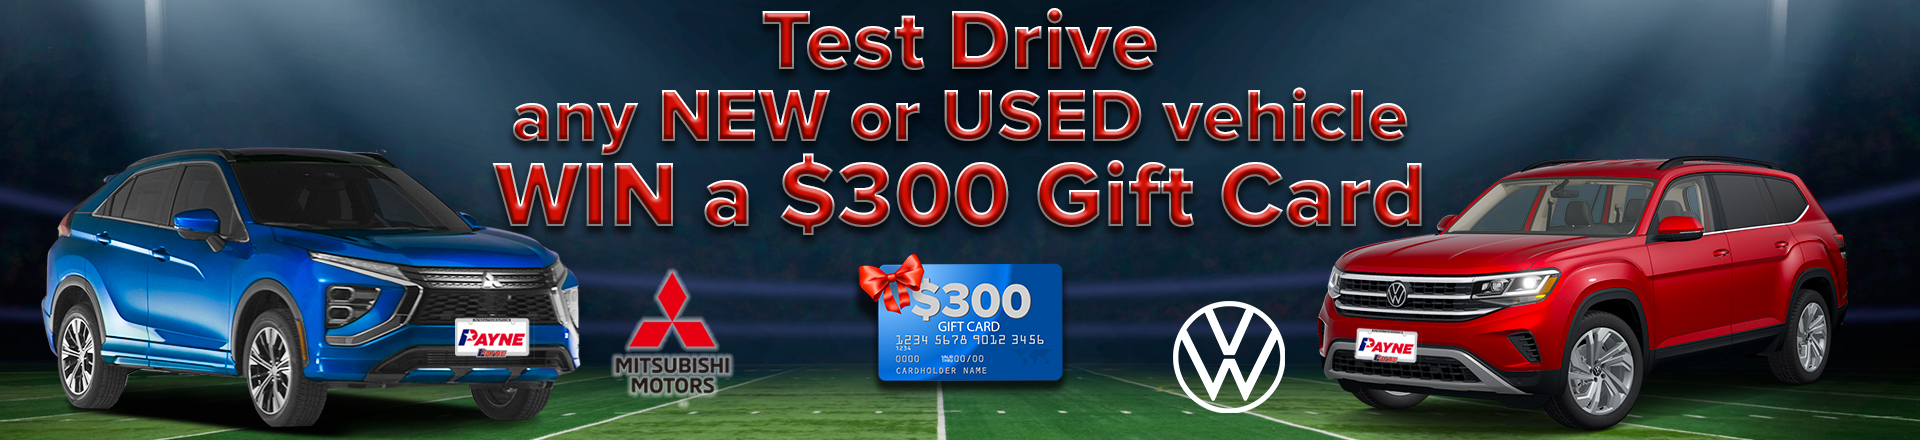 Test Drive to Win $300 Gift Card